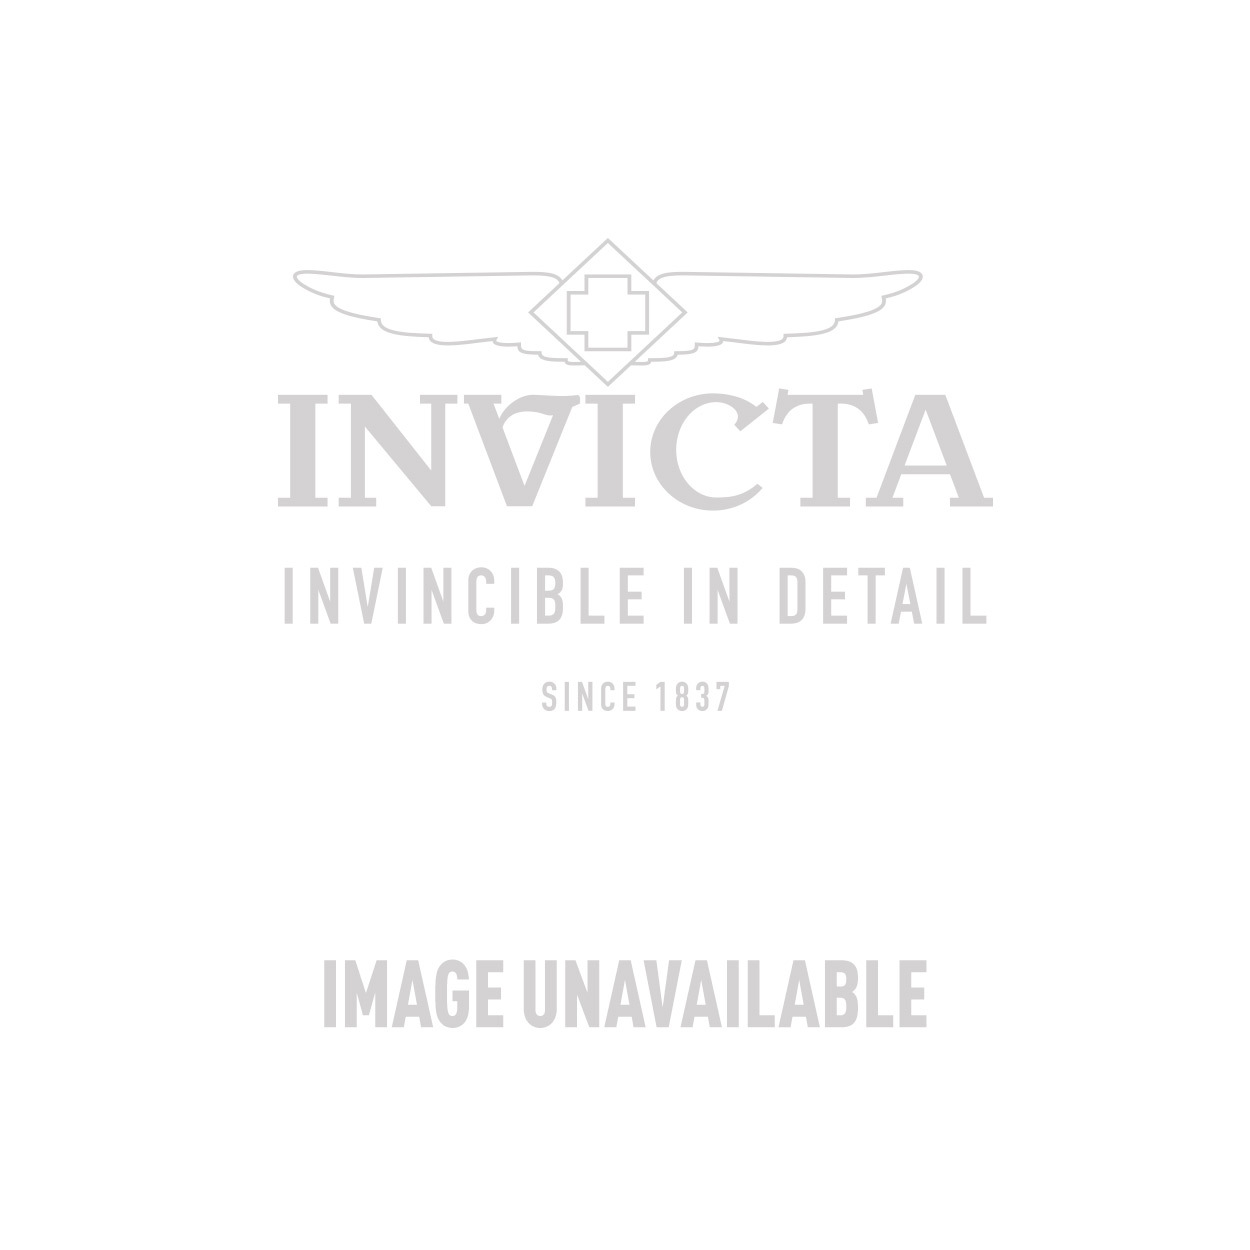 Invicta I-Force Swiss Movement Quartz Watch - Stainless Steel case with Blue, White tone Polyurethane band - Model 11759